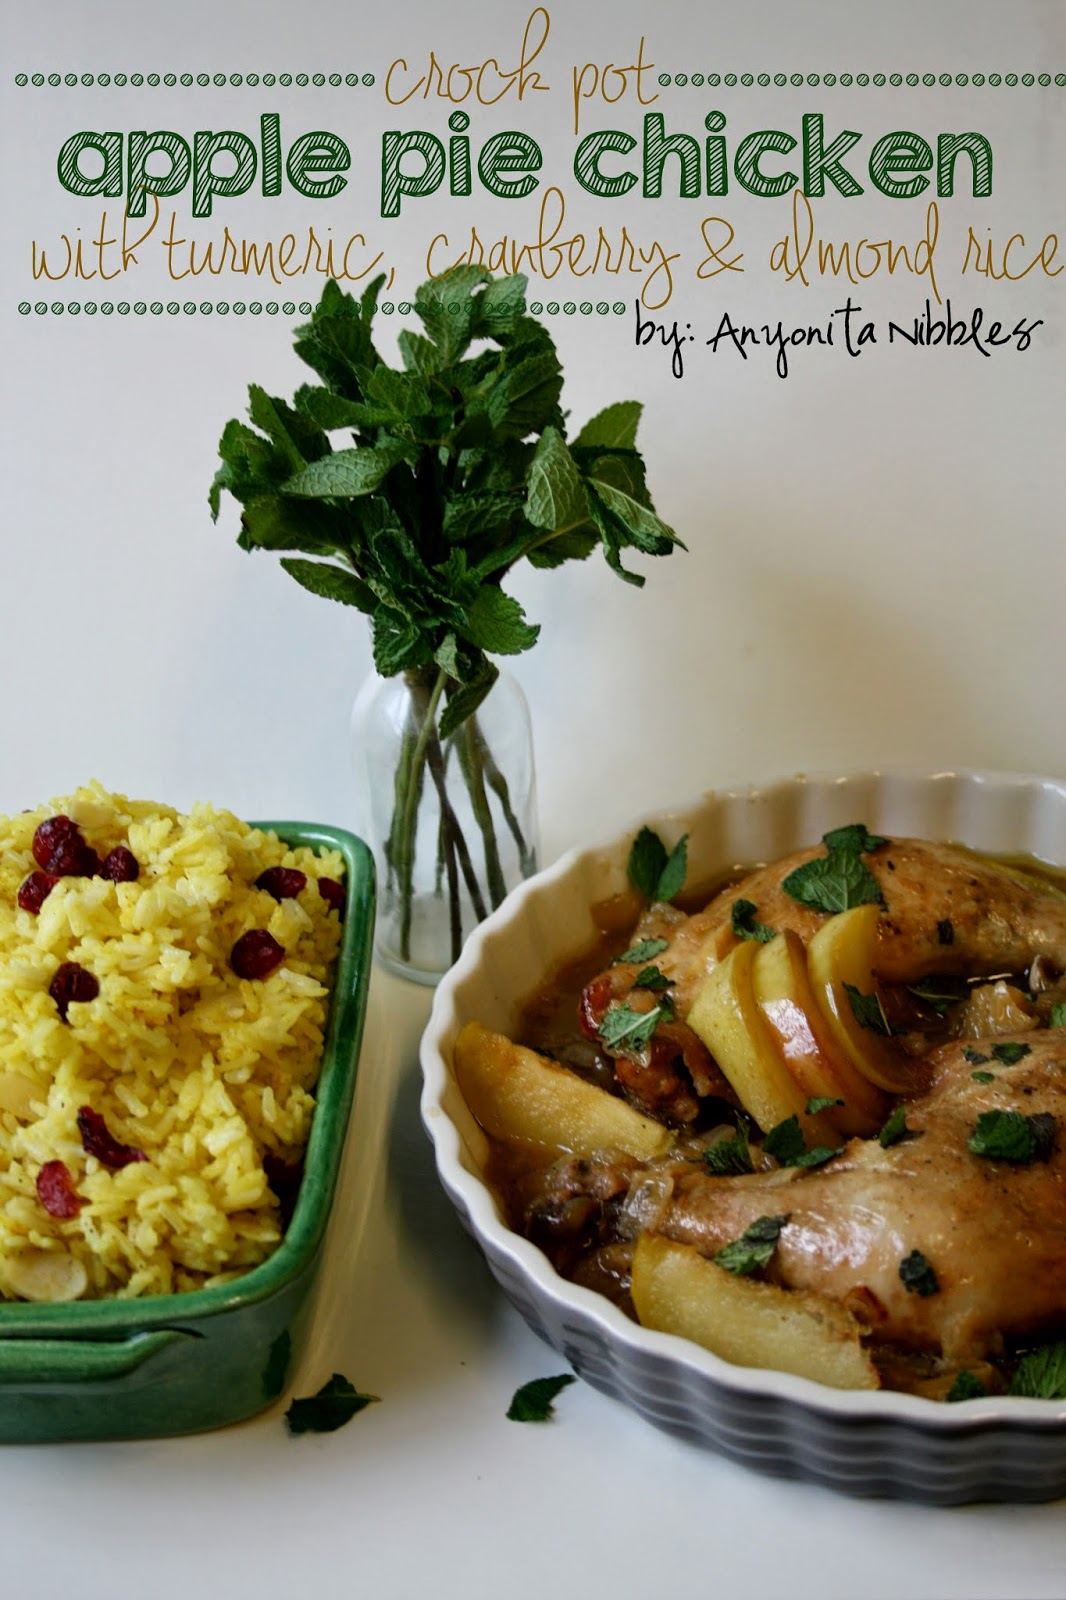 Delicious and unusual #easterdinner Crock Pot Apple Pie Chiken with Turmeric, Cranberry & Almond Rice | Anyonita Nibbles